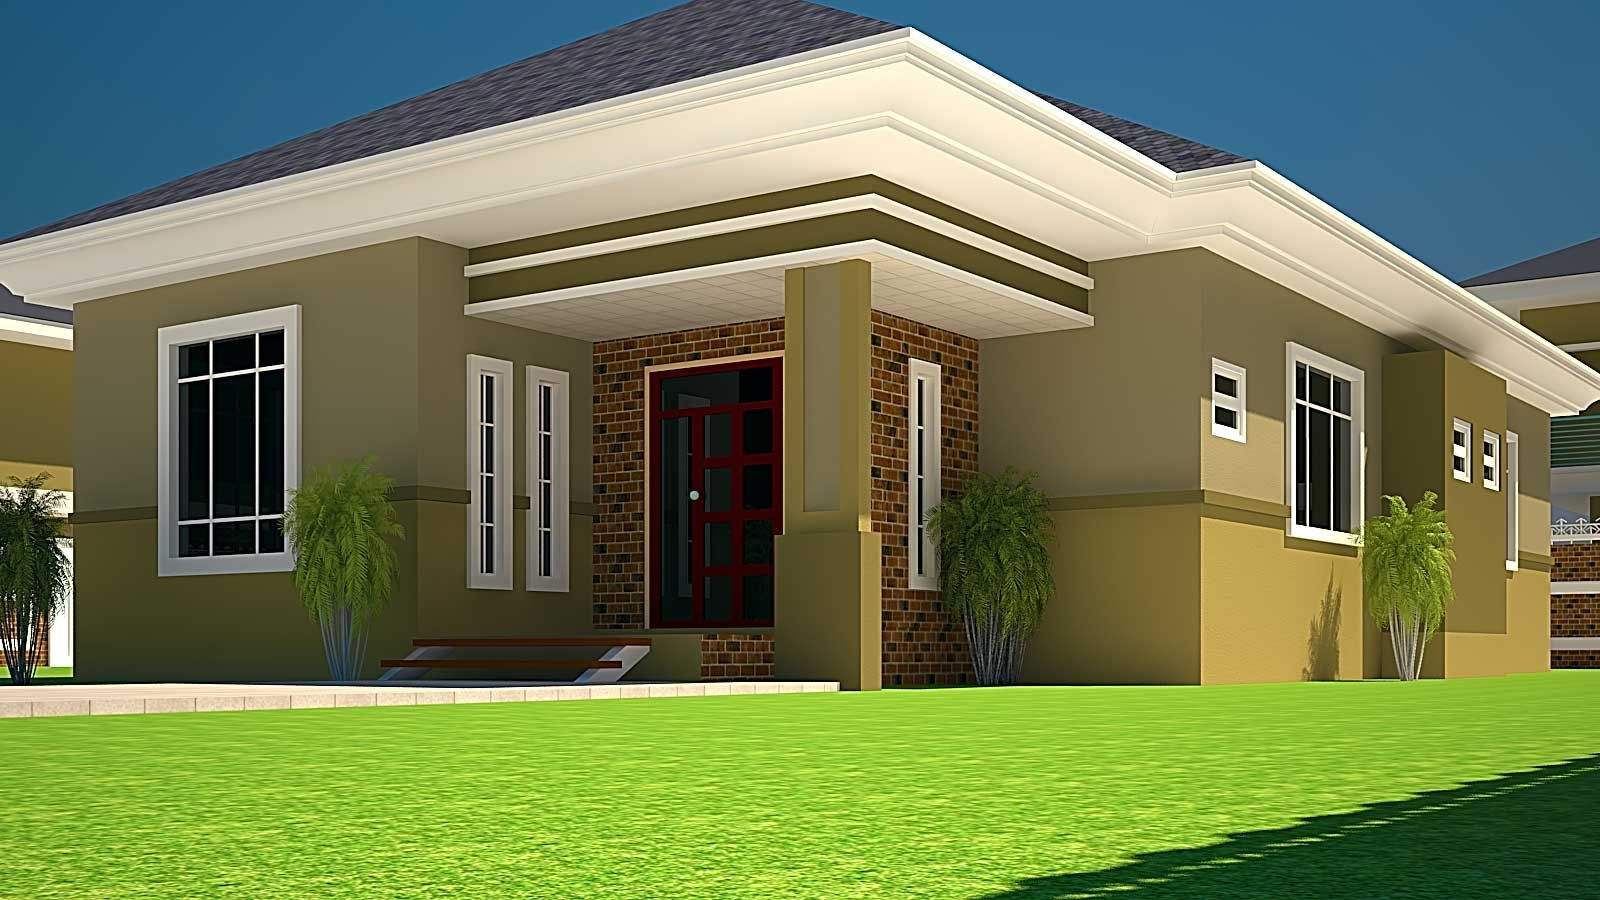 How To Build Your Comfortable House Earning Little Properties Nigeria Bungalow House Design House Design Pictures Bungalow House Plans